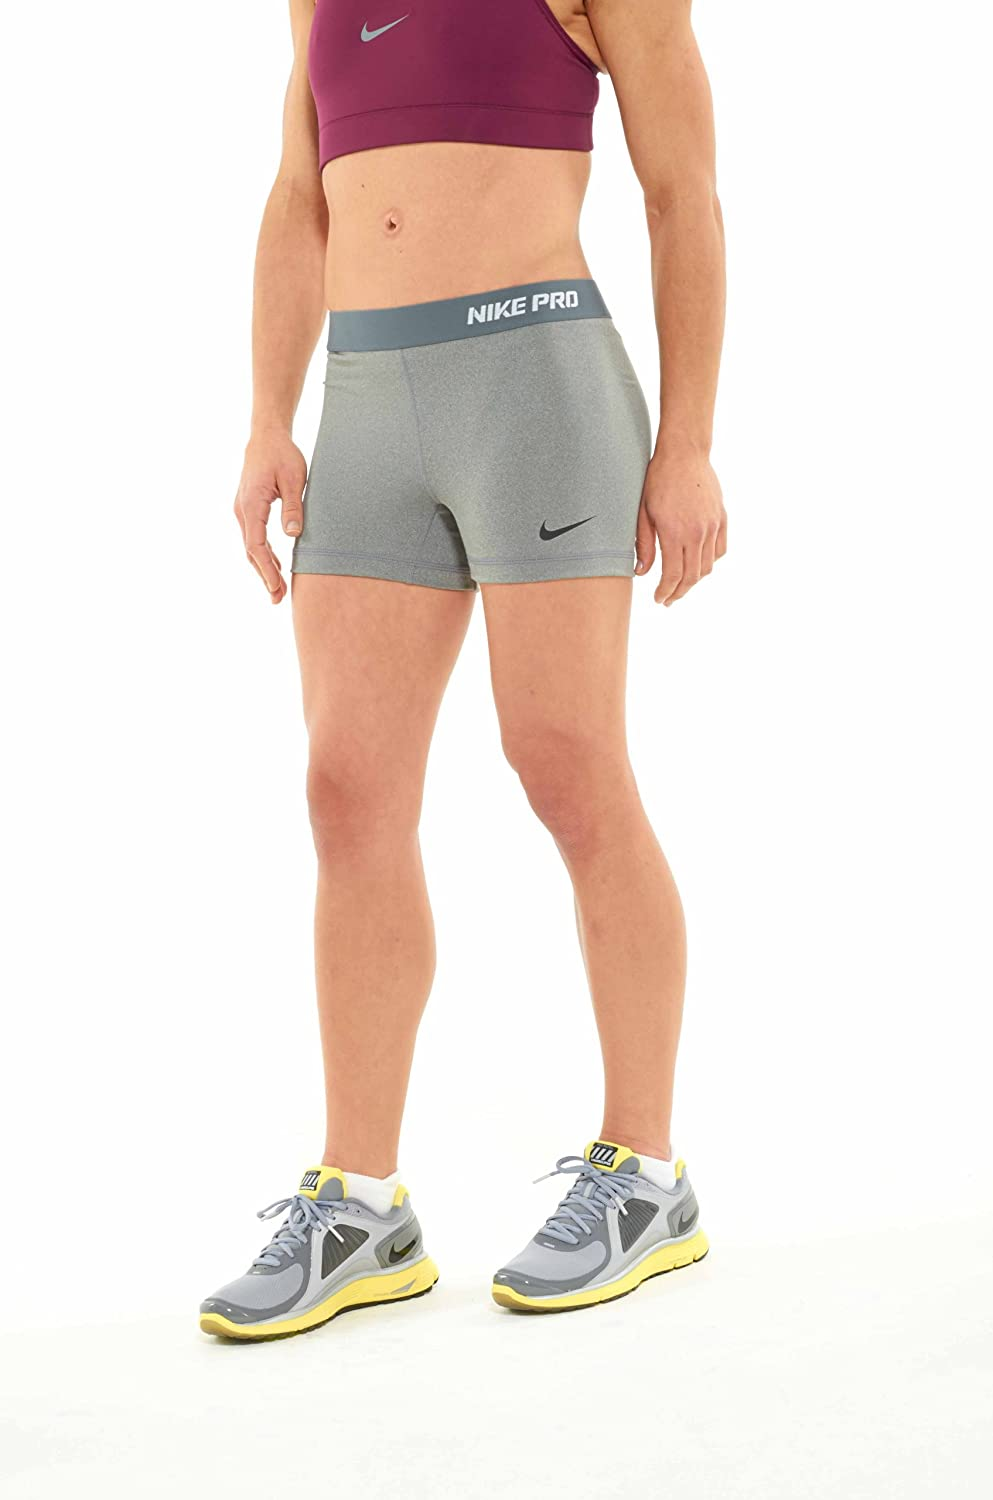 buy online 1027c 16cdf Amazon.com  Nike Pro Core II Women s 2.5 Inch Compression Shorts  Sports    Outdoors